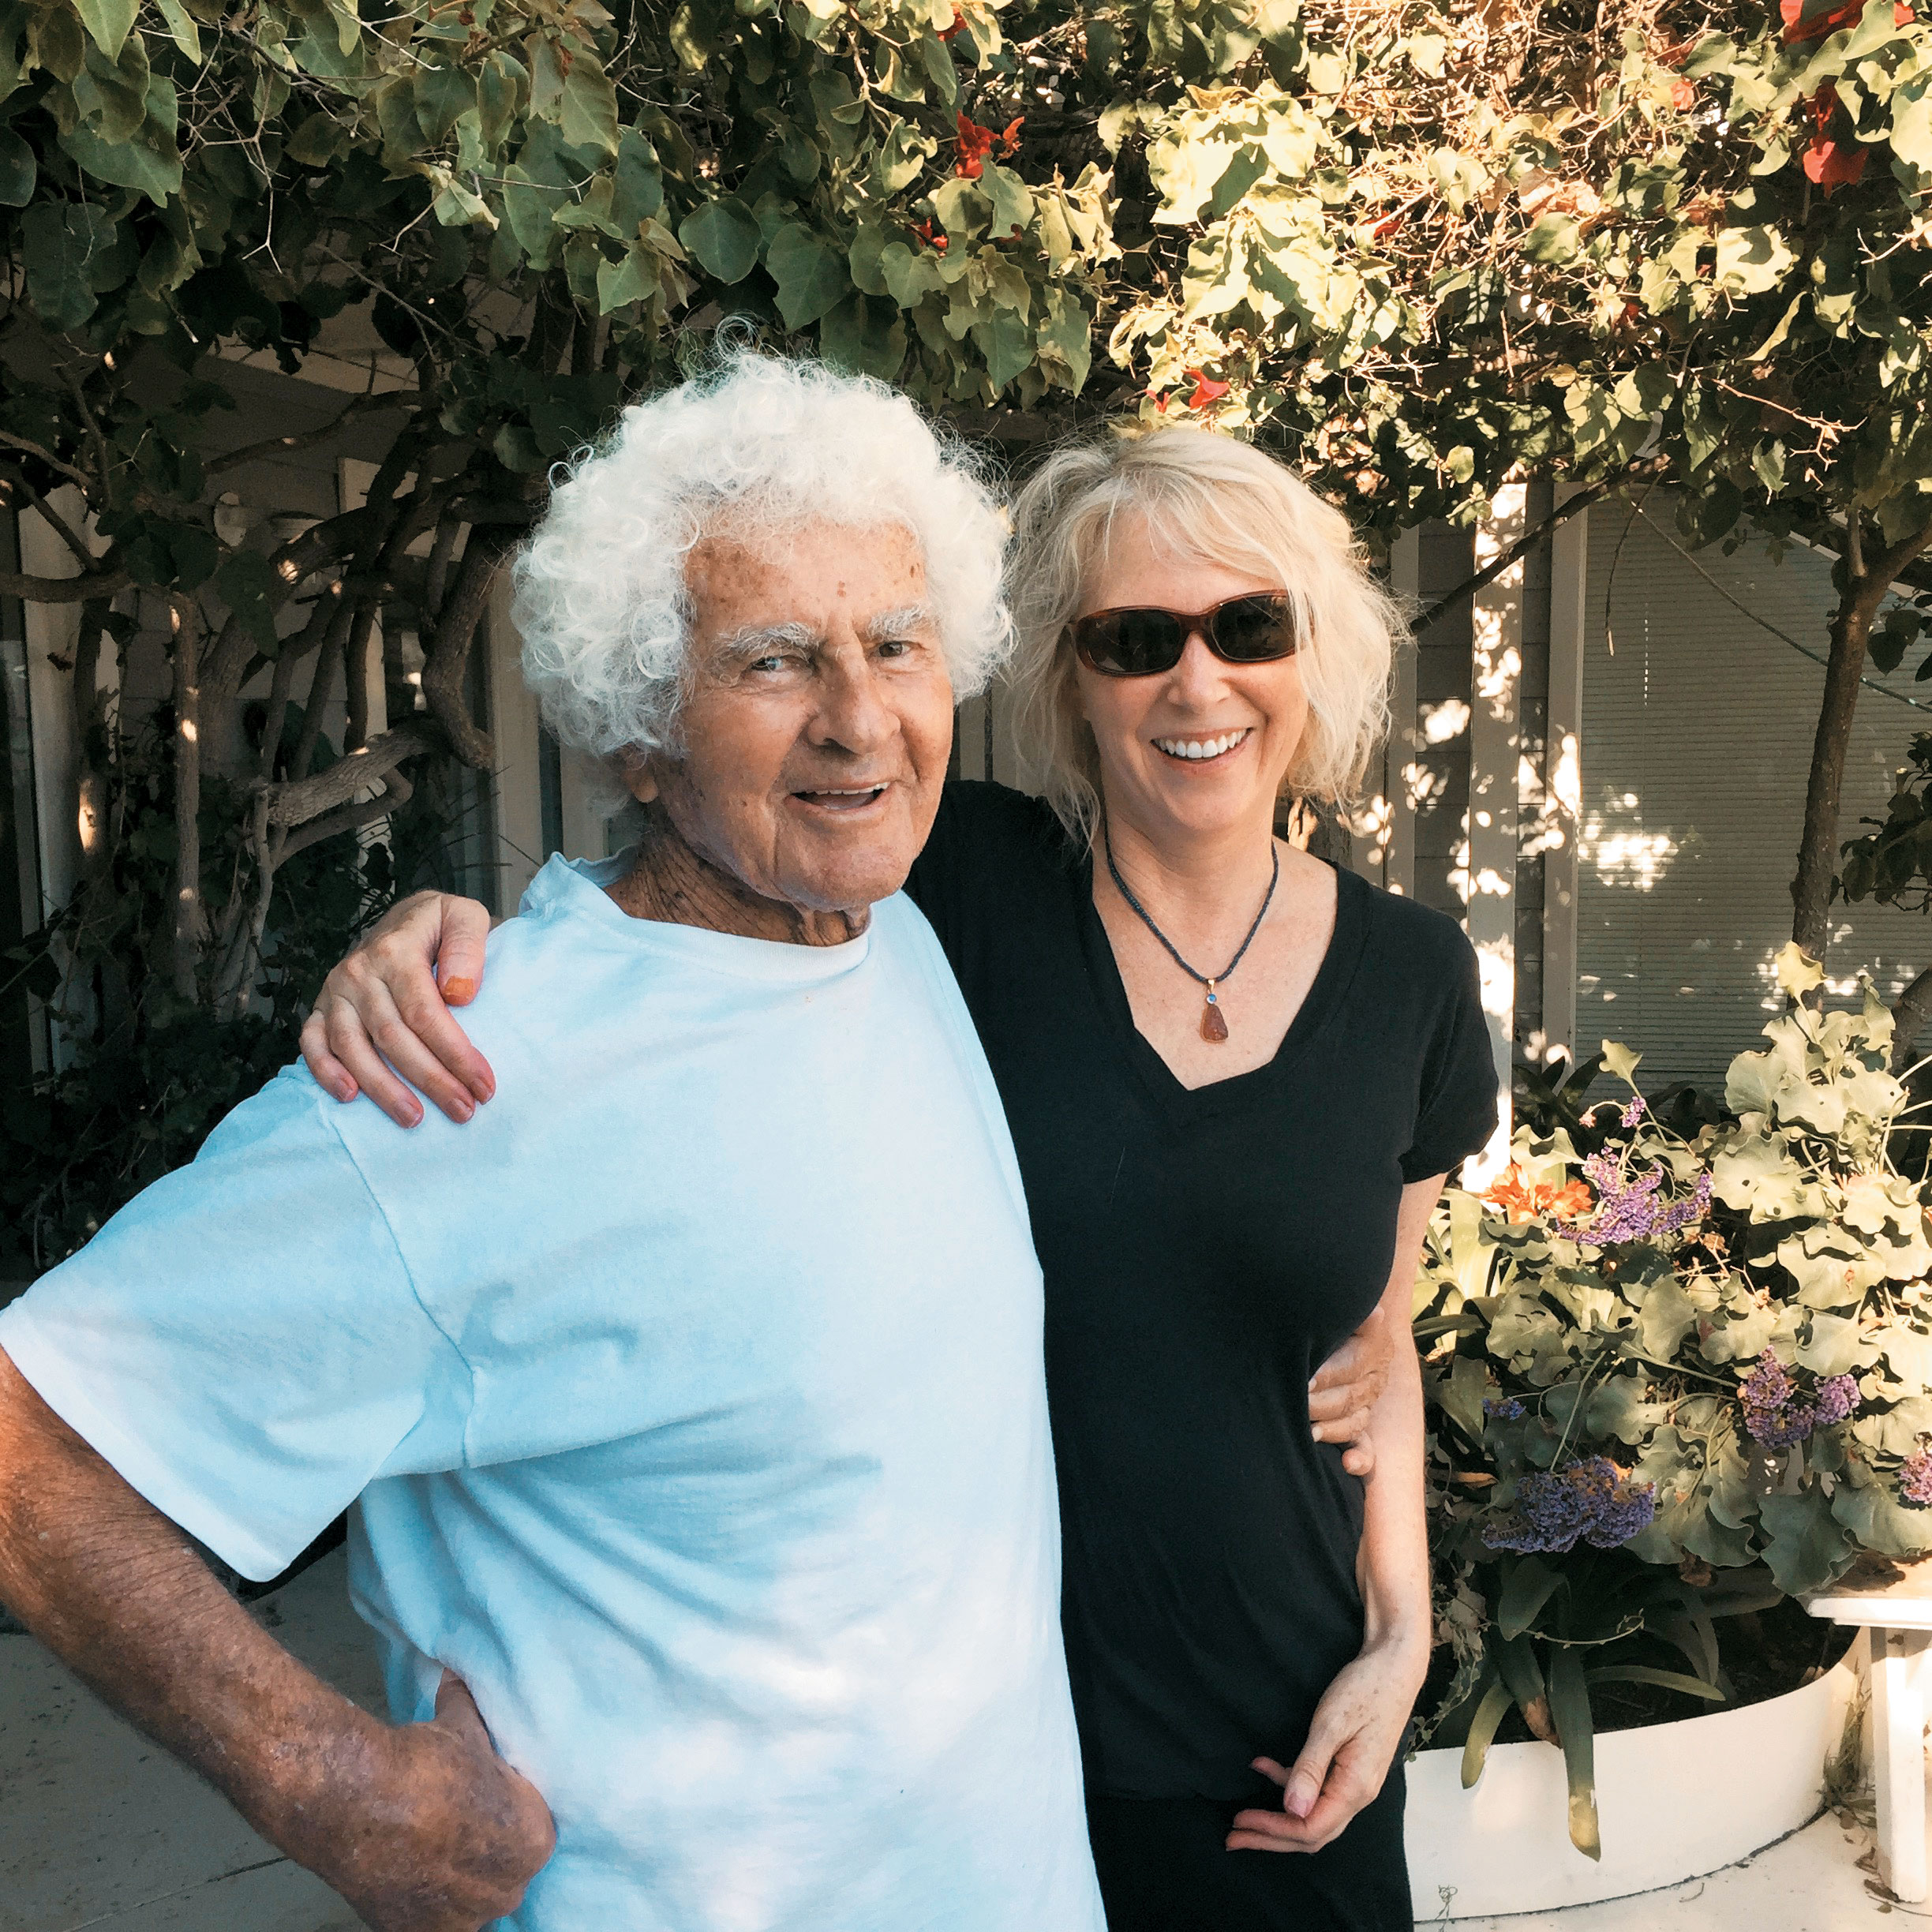 Marie Ferro with good friend Art Janov at his Malibu beach house.